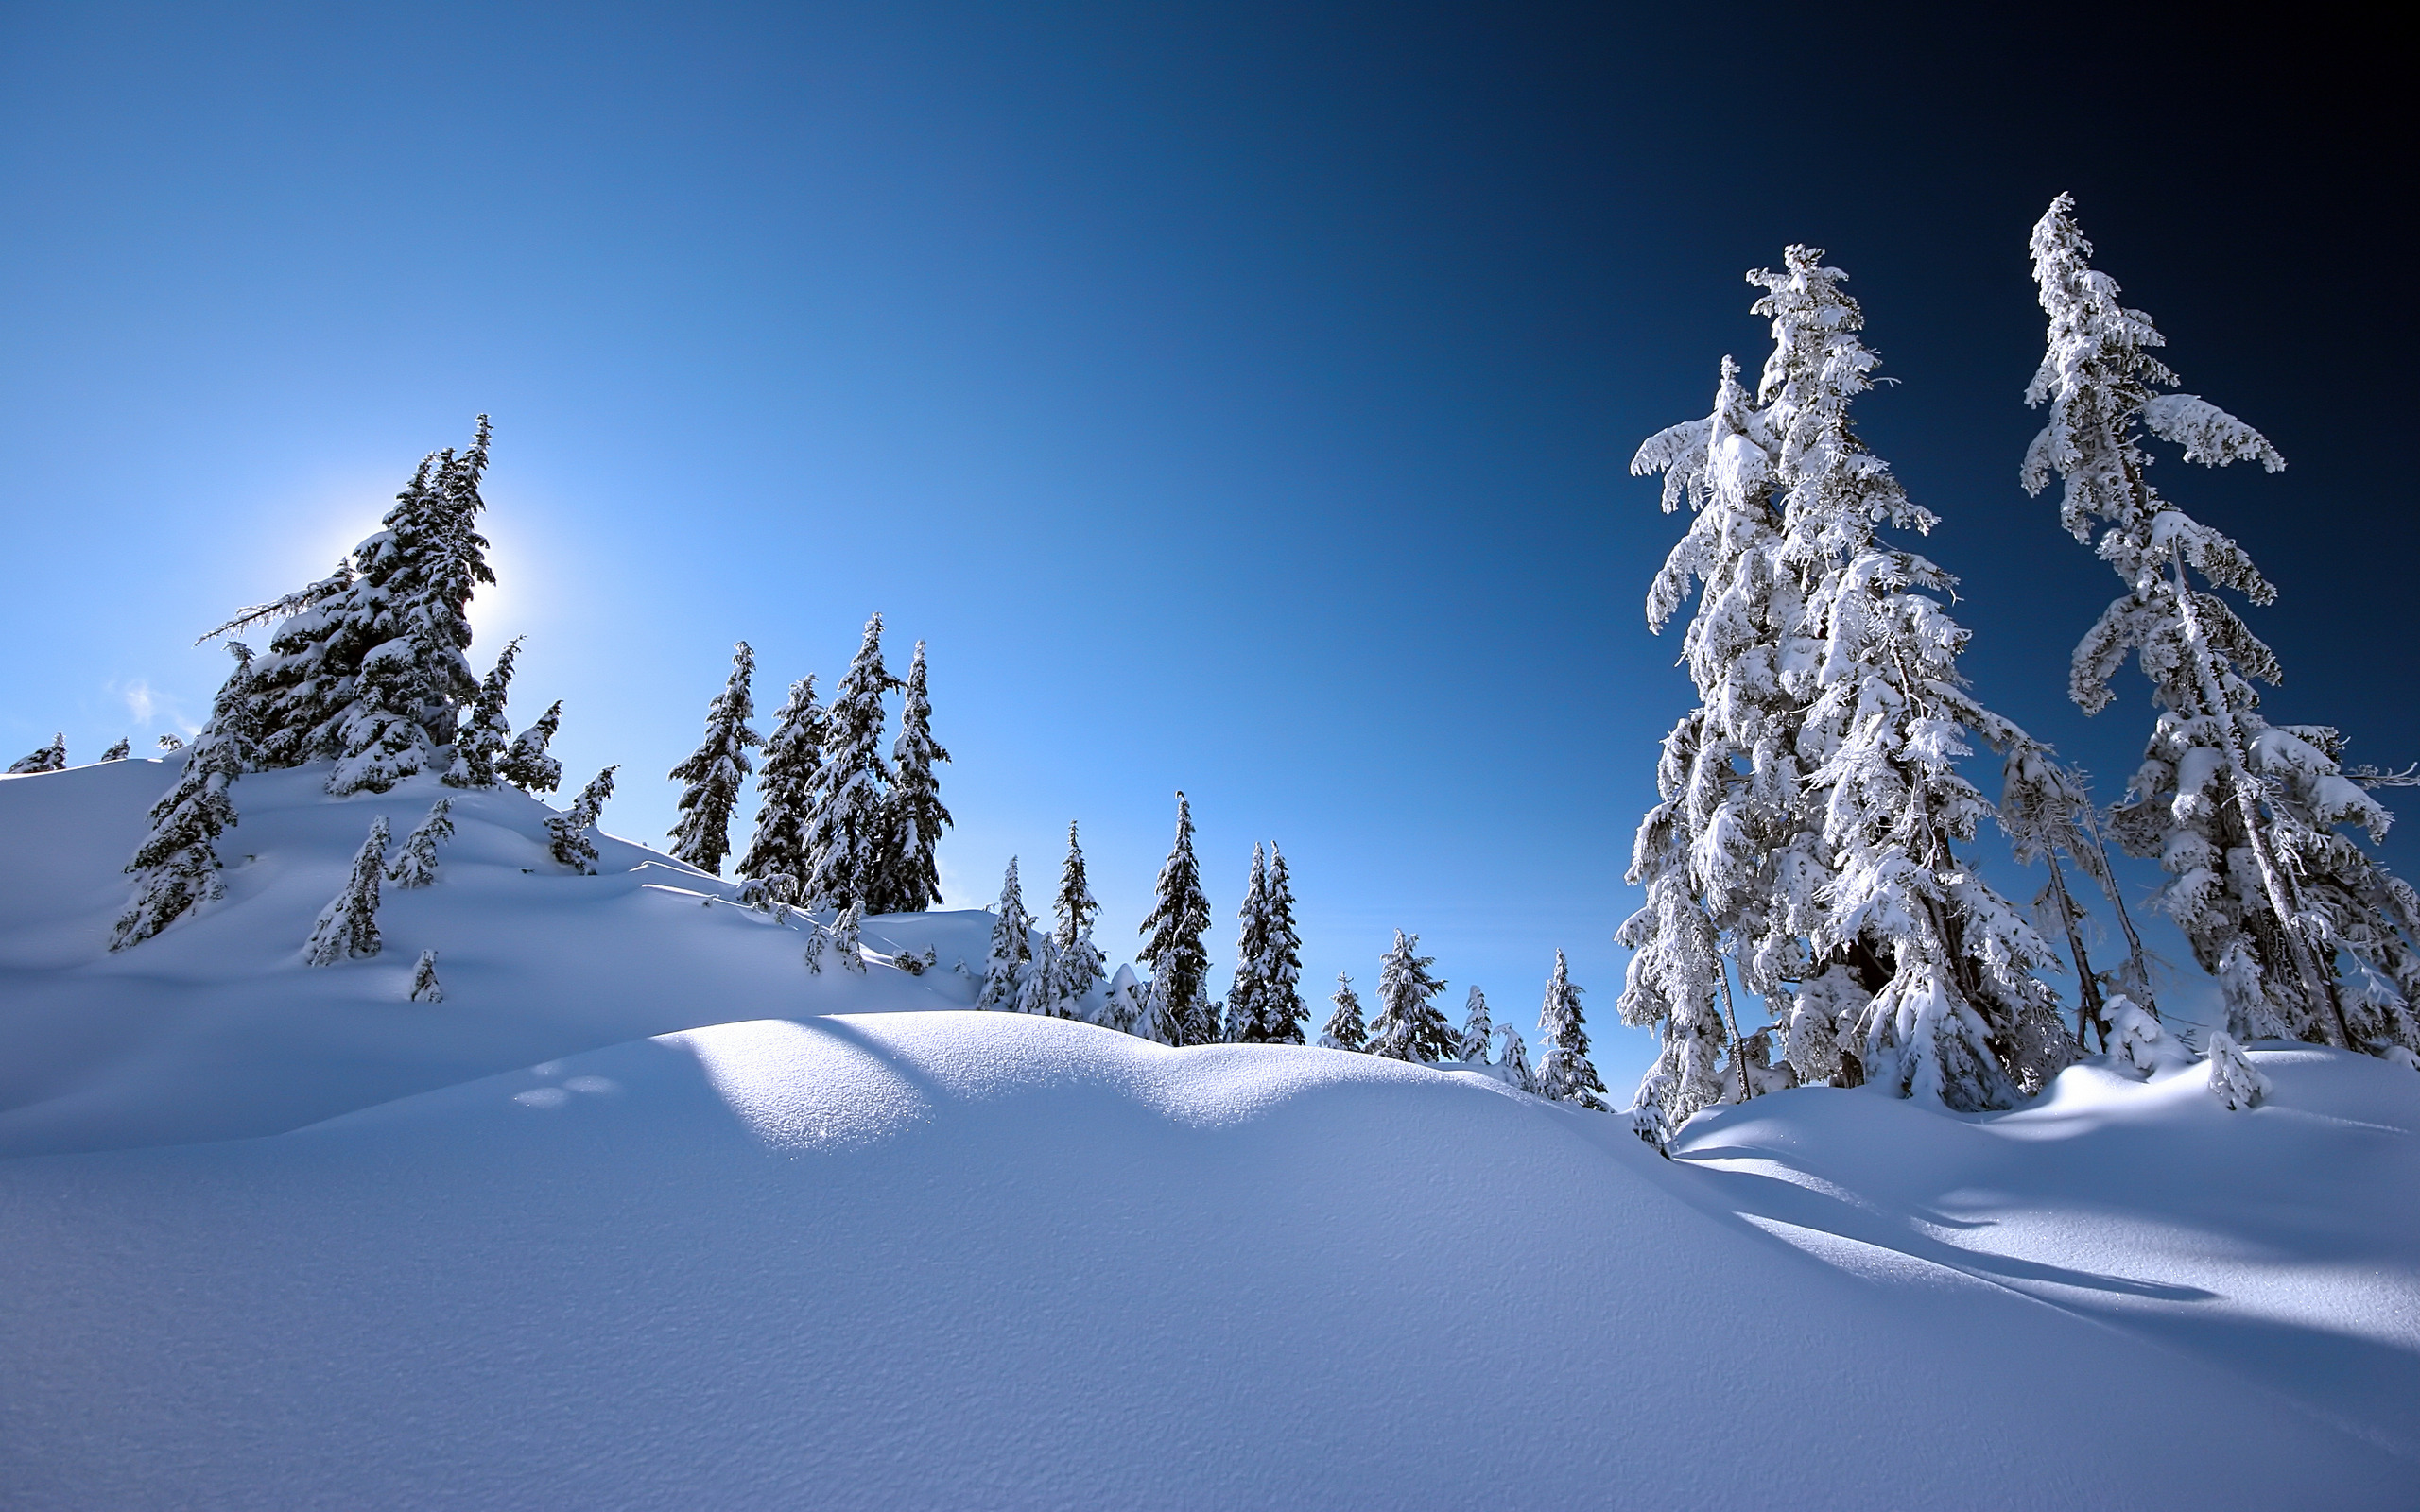 Earth - Winter  Snow Night Wallpaper